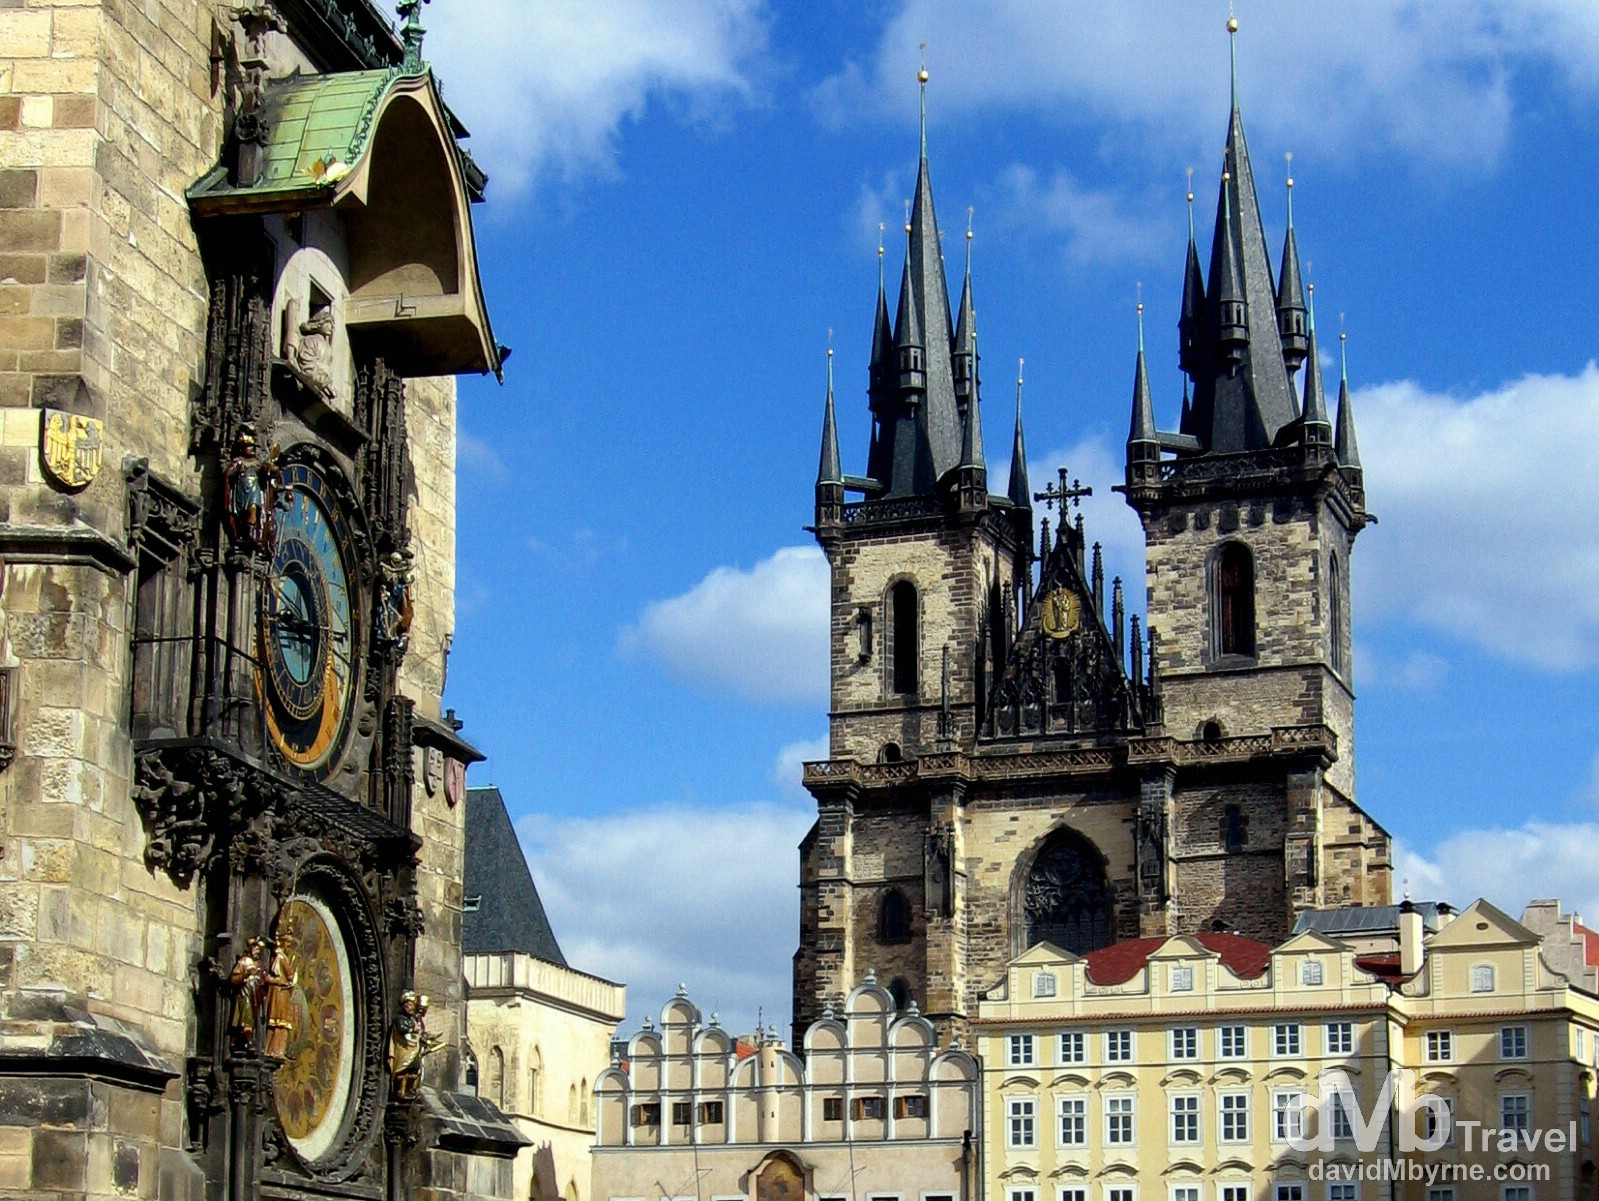 The famous Astronomical Clock of Old Town Hall & the twin towers of the Gothic Týn Church on Old Town Square, Prague, Czech Republic. March 8, 2006.